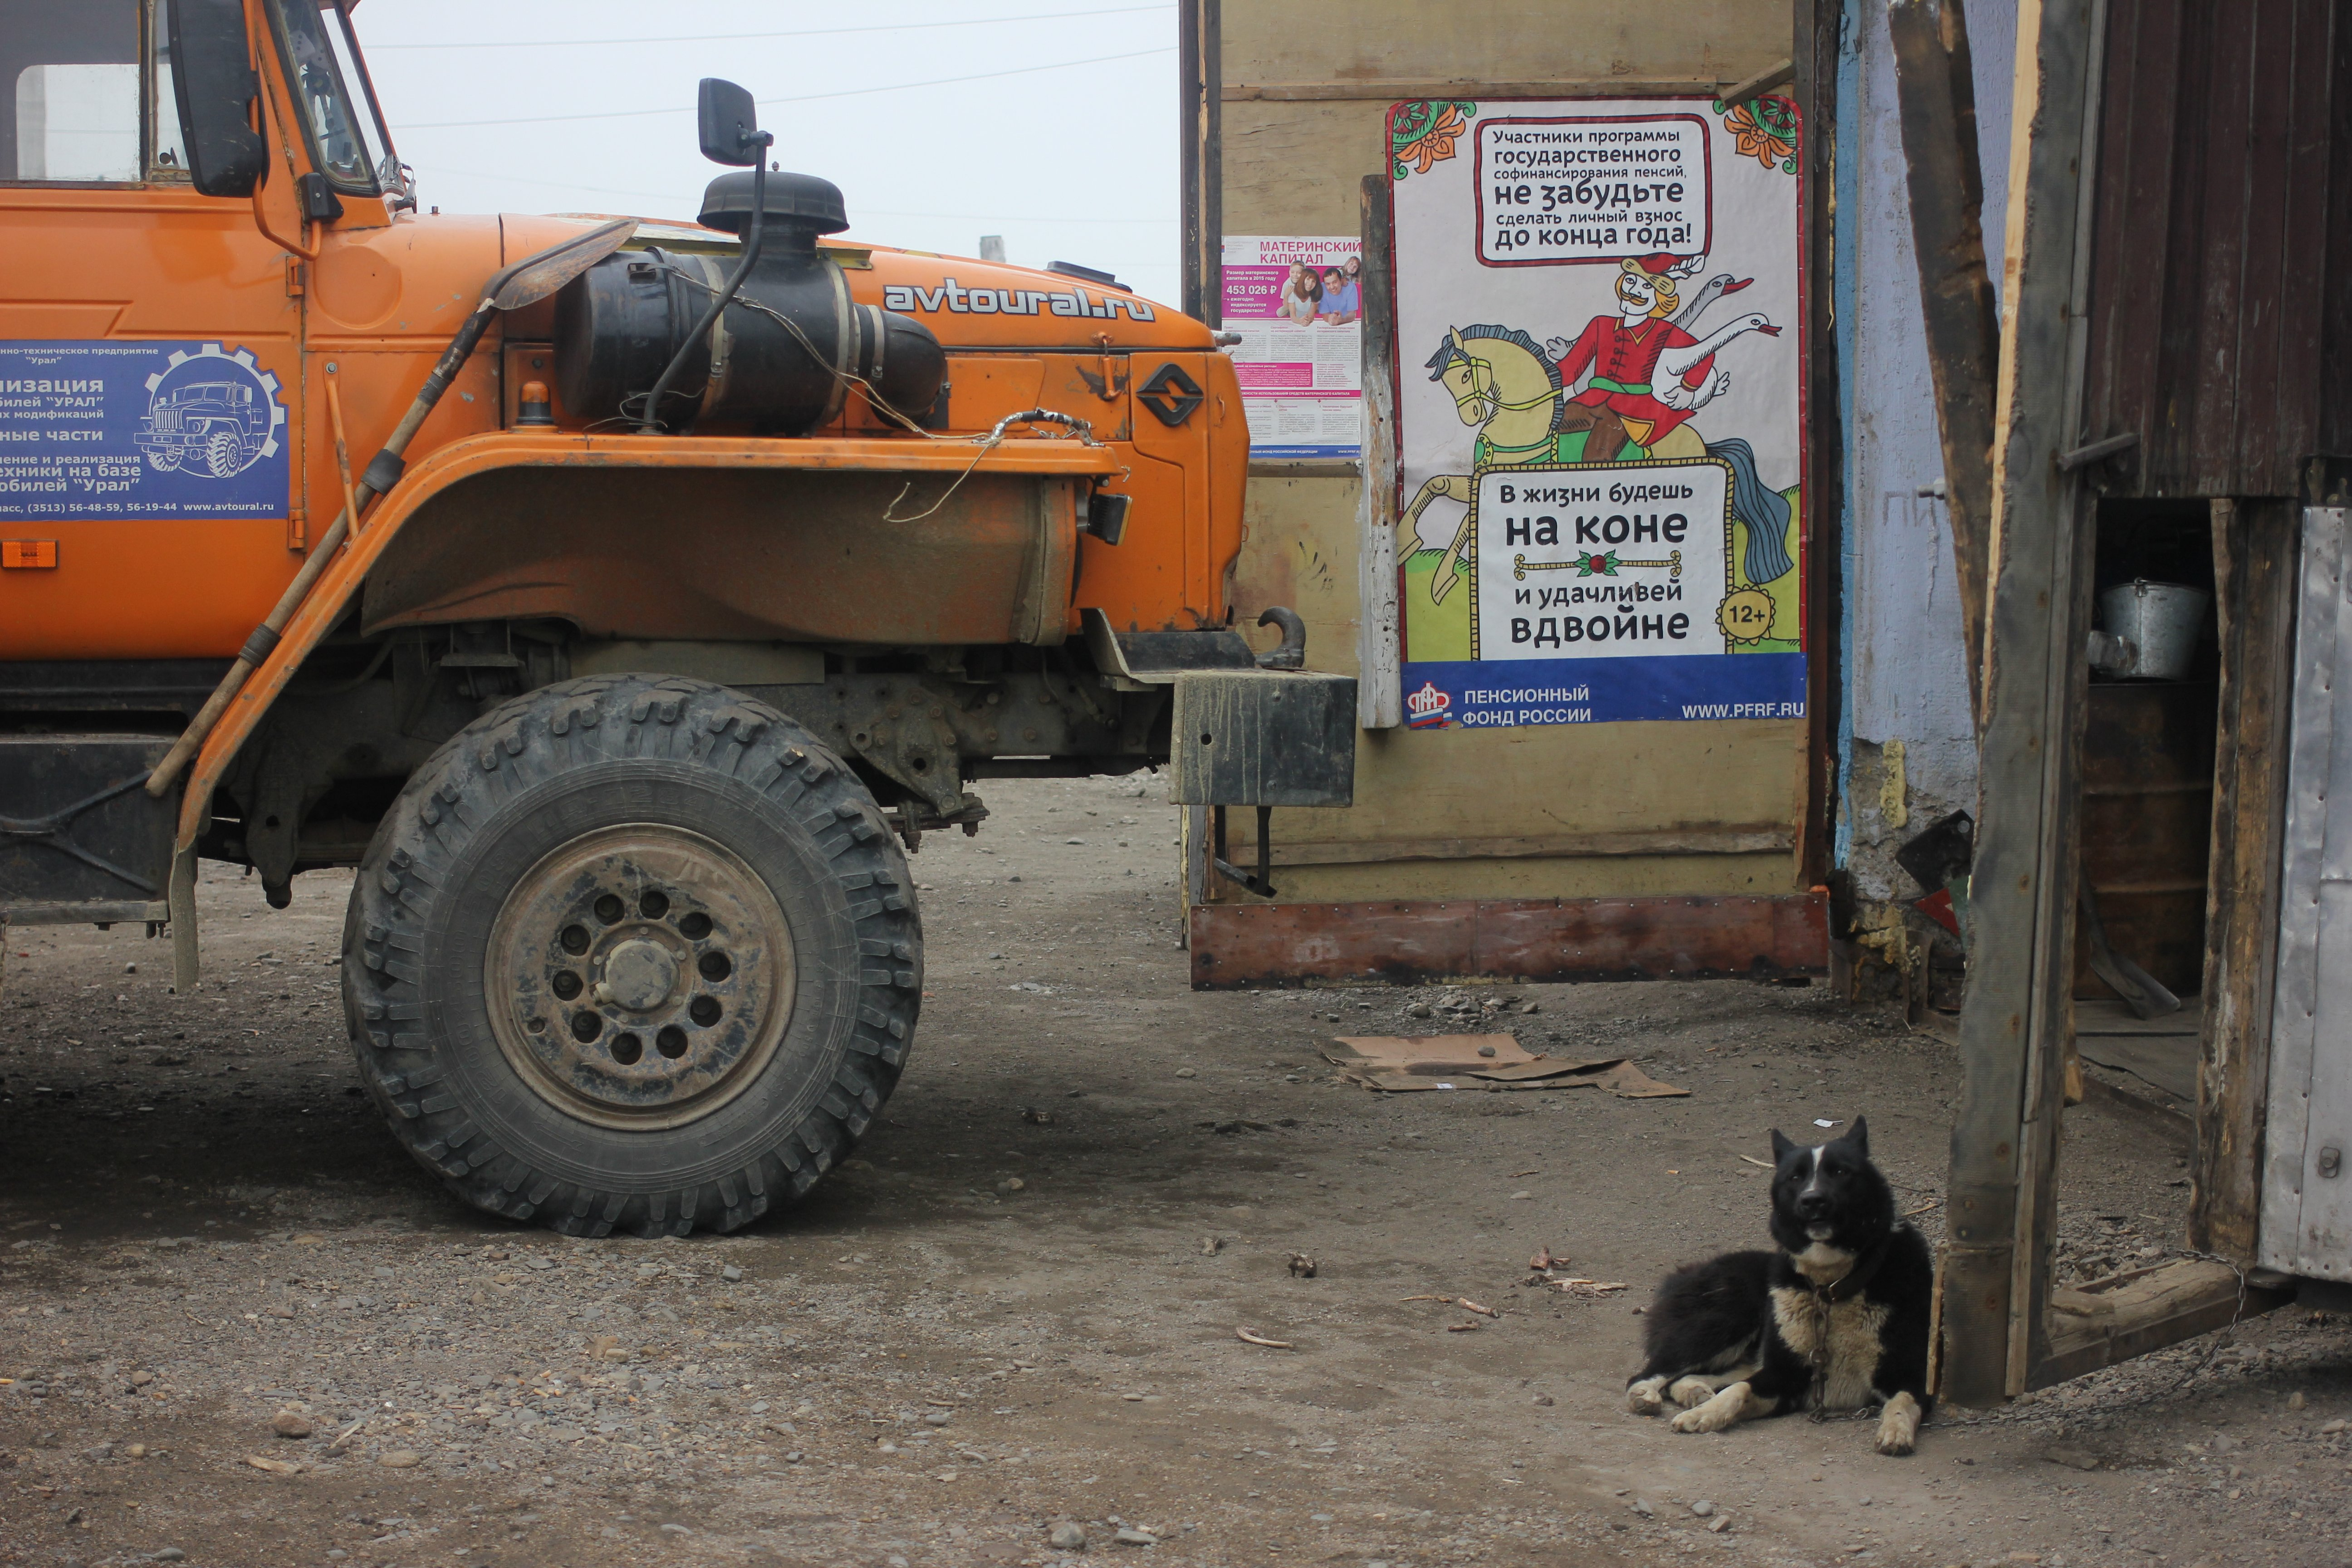 A six-wheel bus parked at a mechanical shop in Lorino, Chukotka, July 2016. There are only a few gravel roads connecting communities in the region, and buses provide the majority of overland transportation. (Kirsten Swann / Alaska Dispatch News)